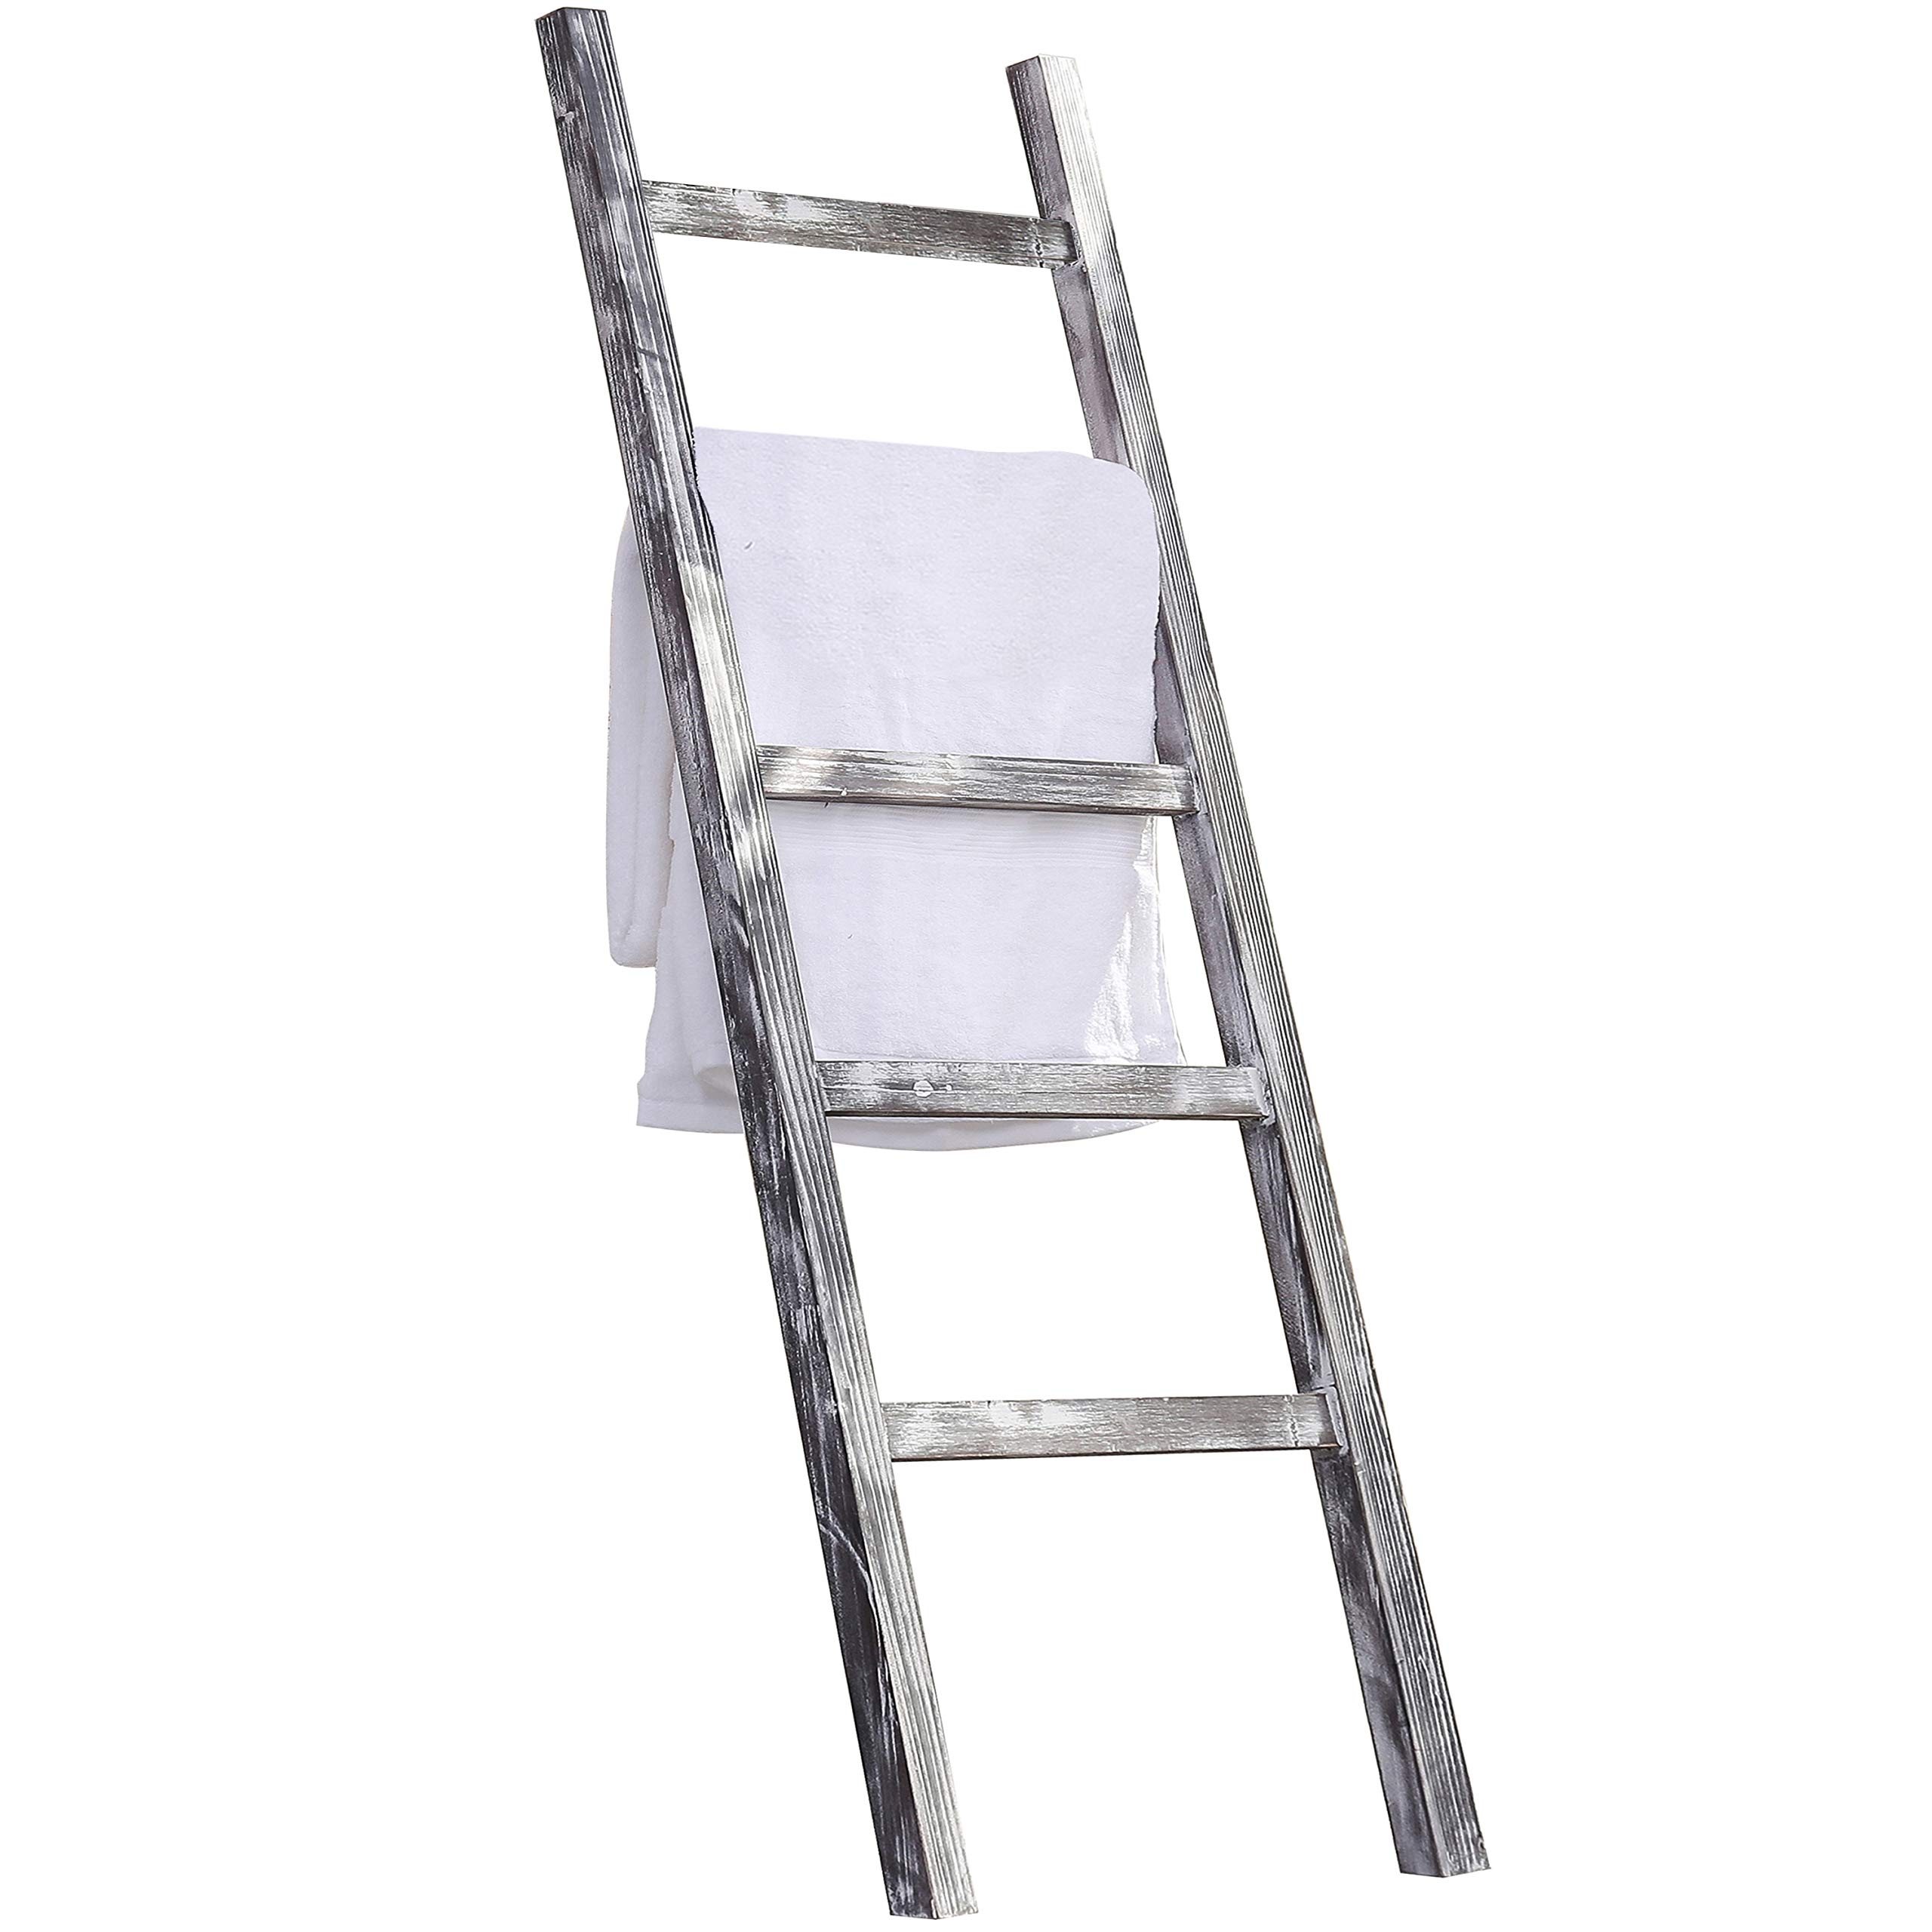 MyGift 4.5-Foot Weathered Wood Decorative Blanket Storage Ladder by MyGift